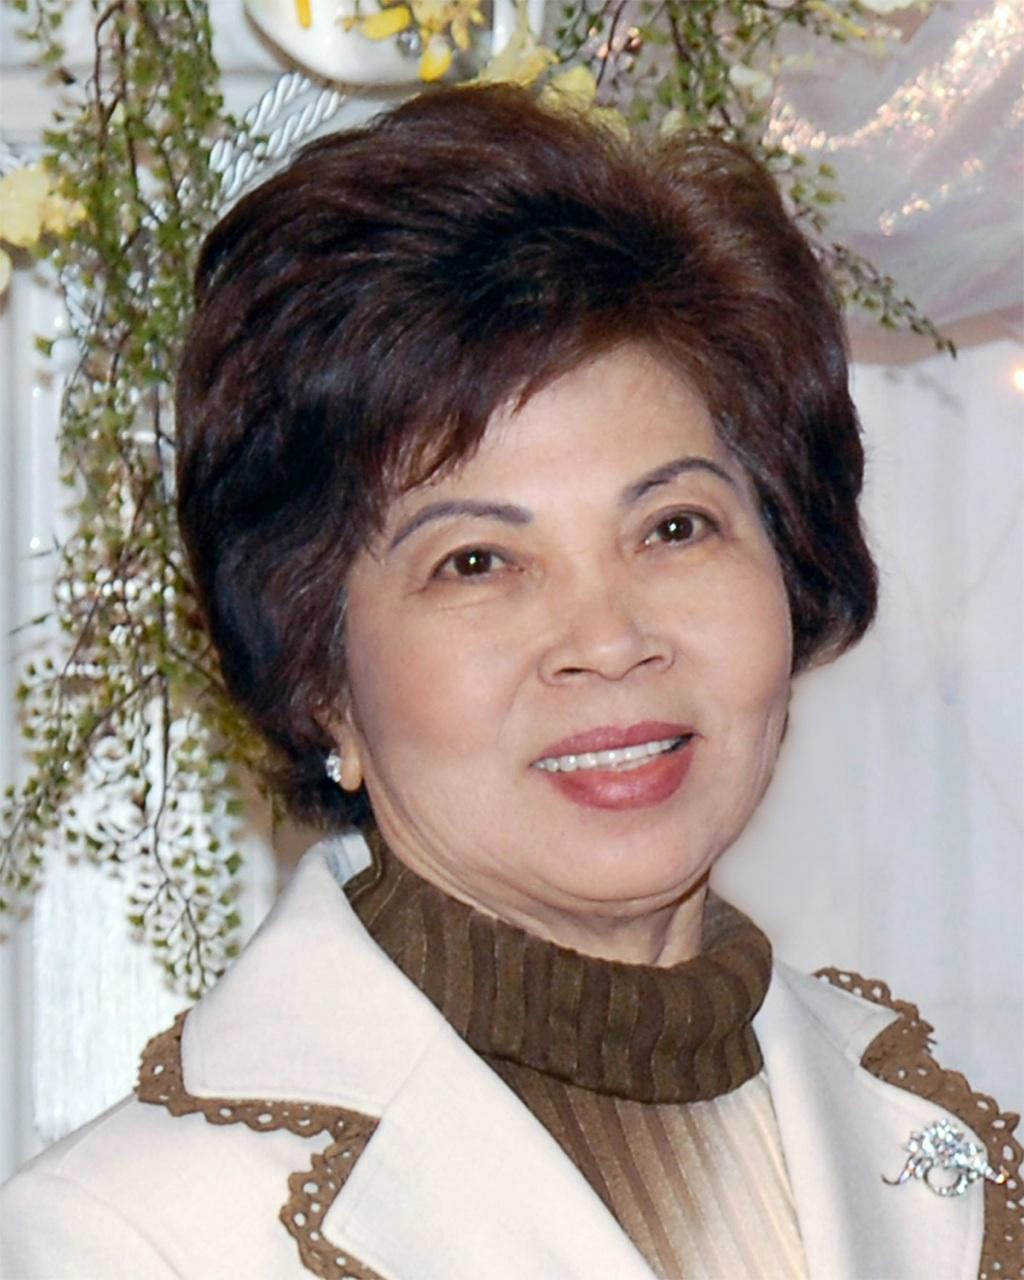 Share Obituary For Xuan Tran Westminster Ca